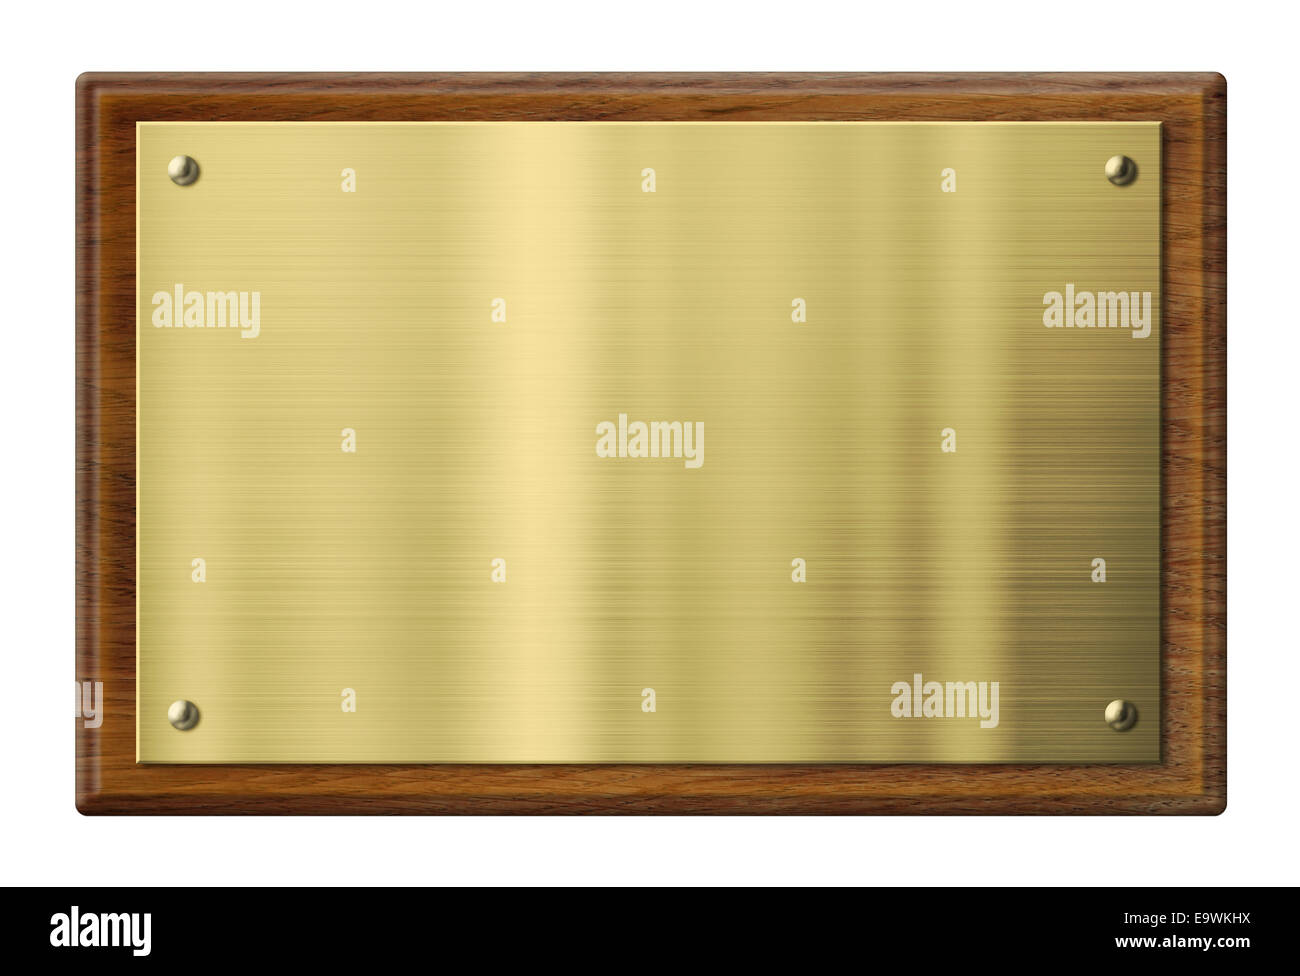 Wood plaque with brass or gold metal plate. Clipping path included. - Stock Image